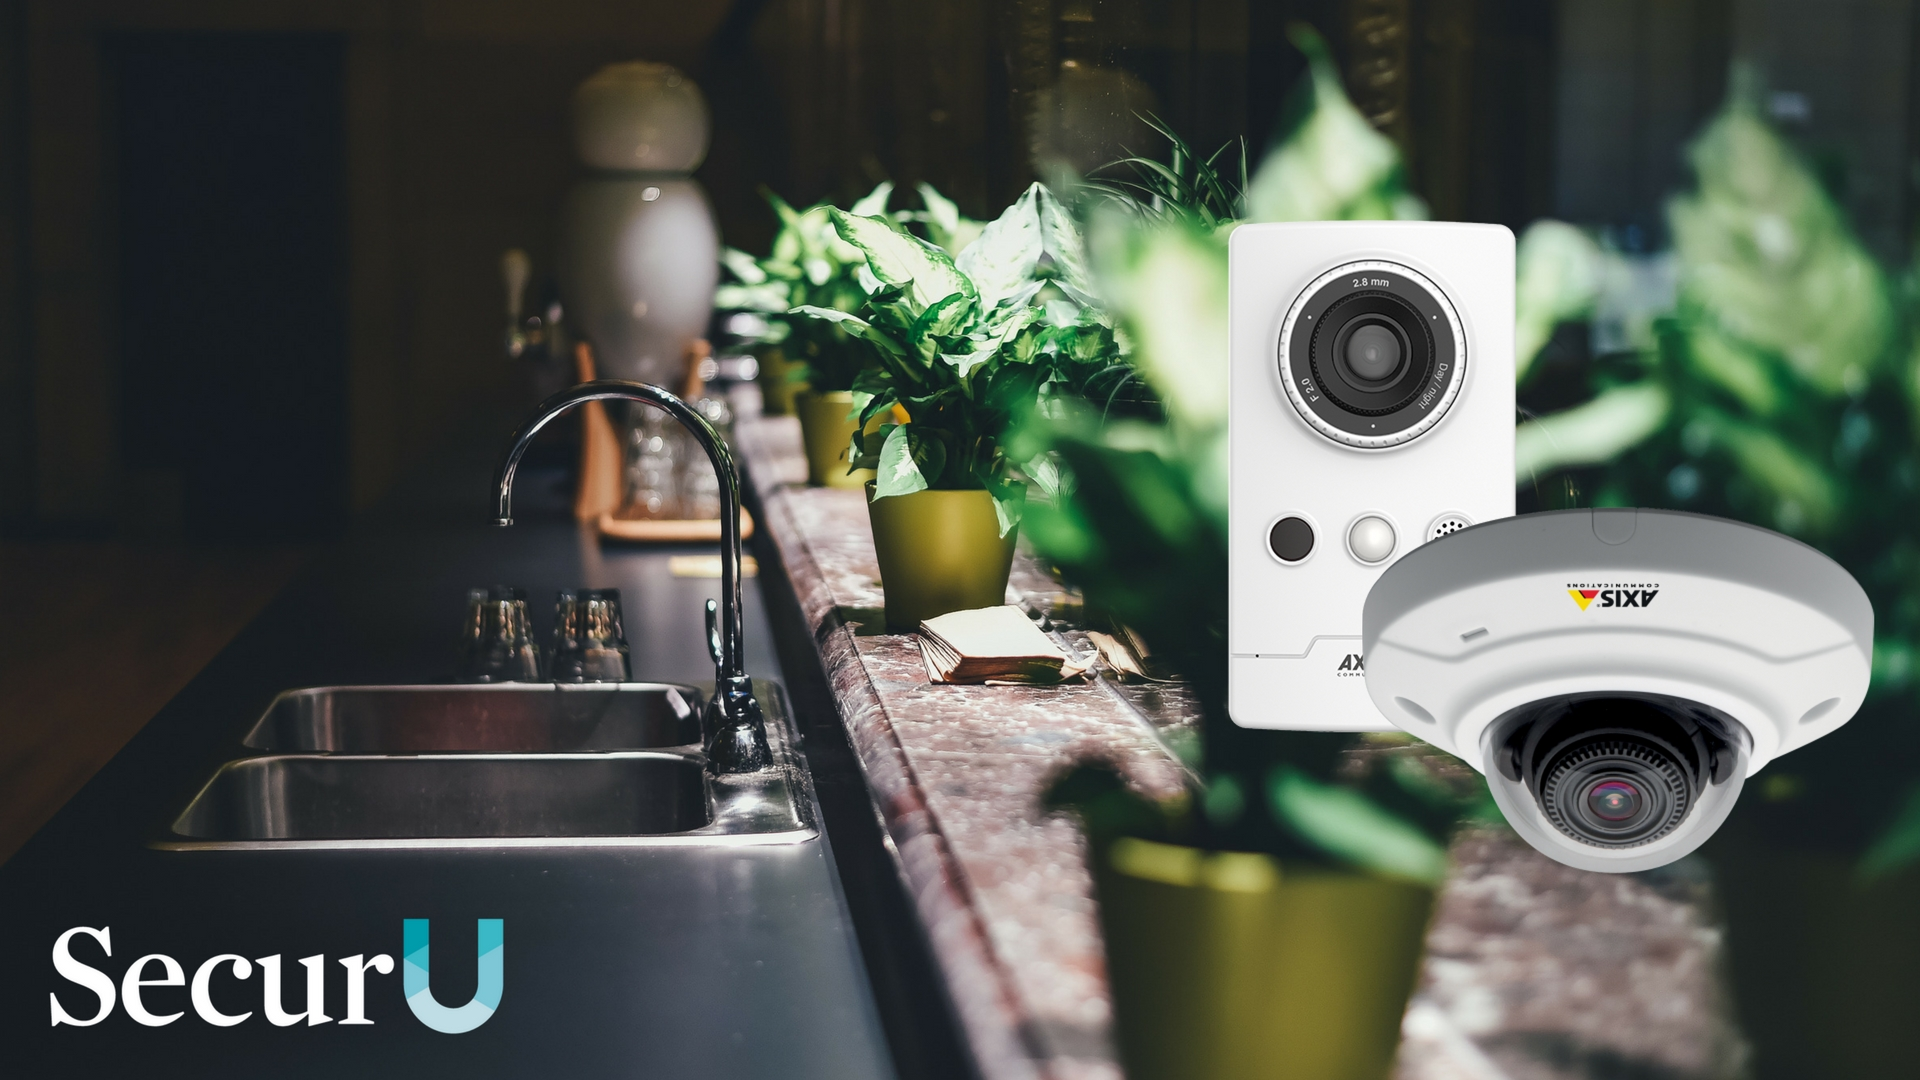 What Kind Of Residential Security Camera Do I Need For My Home?